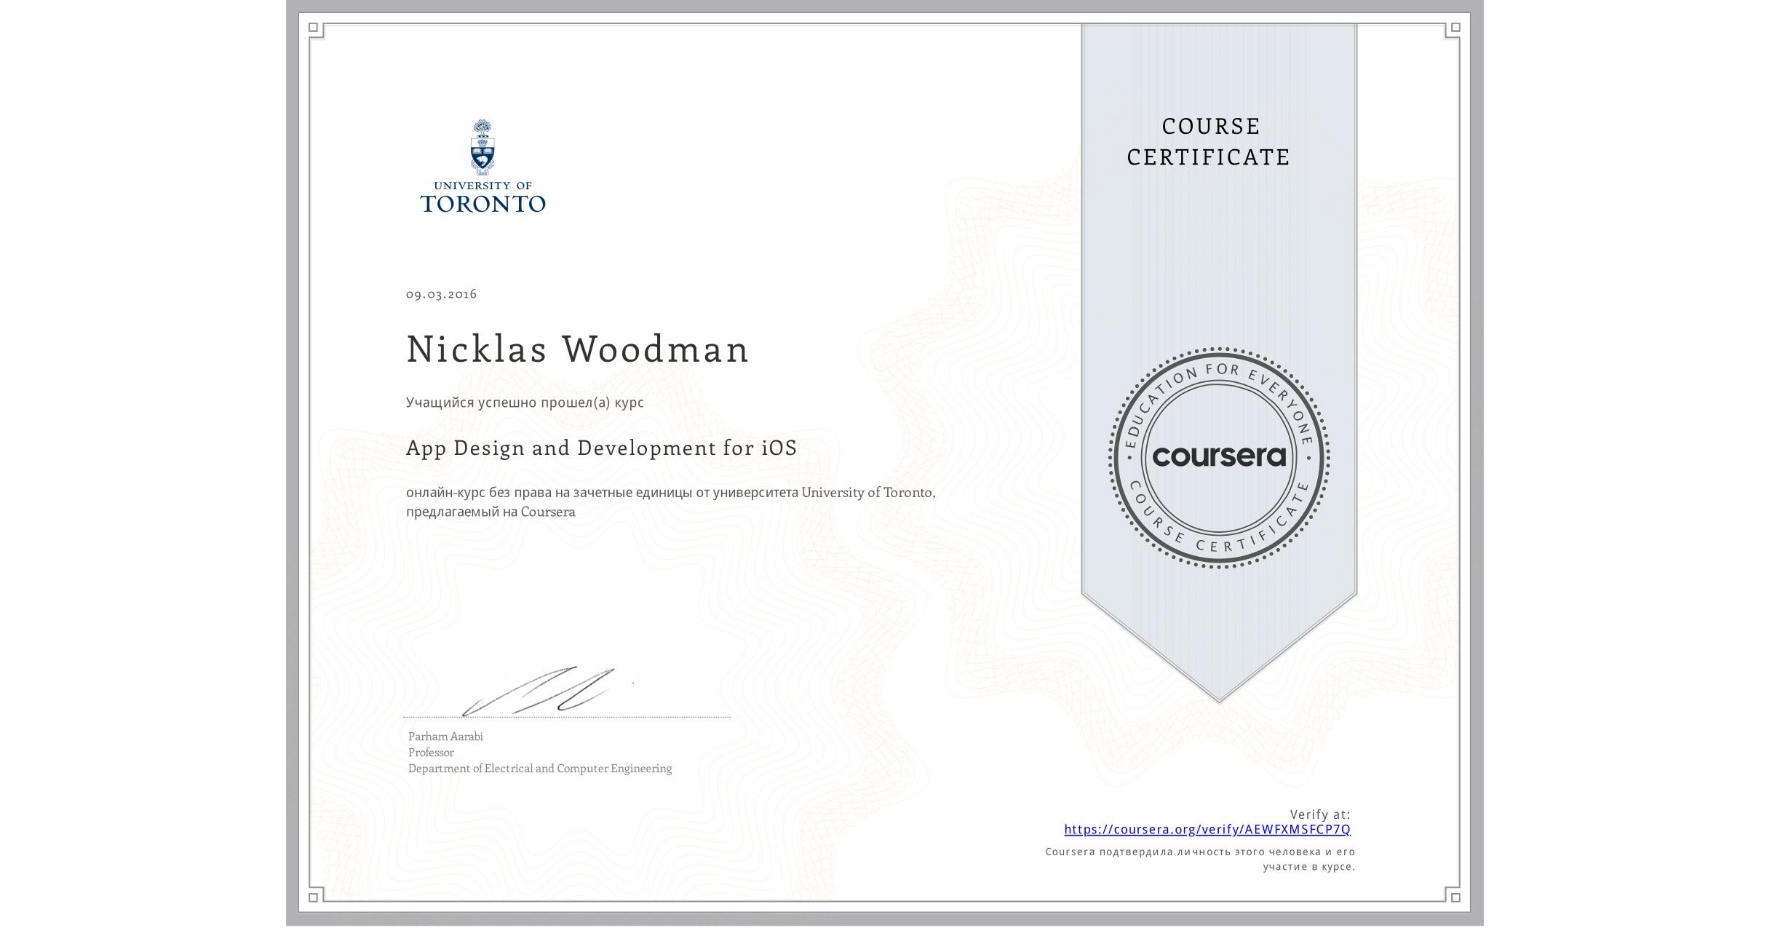 View certificate for Nicklas Woodman, App Design and Development for iOS, an online non-credit course authorized by University of Toronto and offered through Coursera